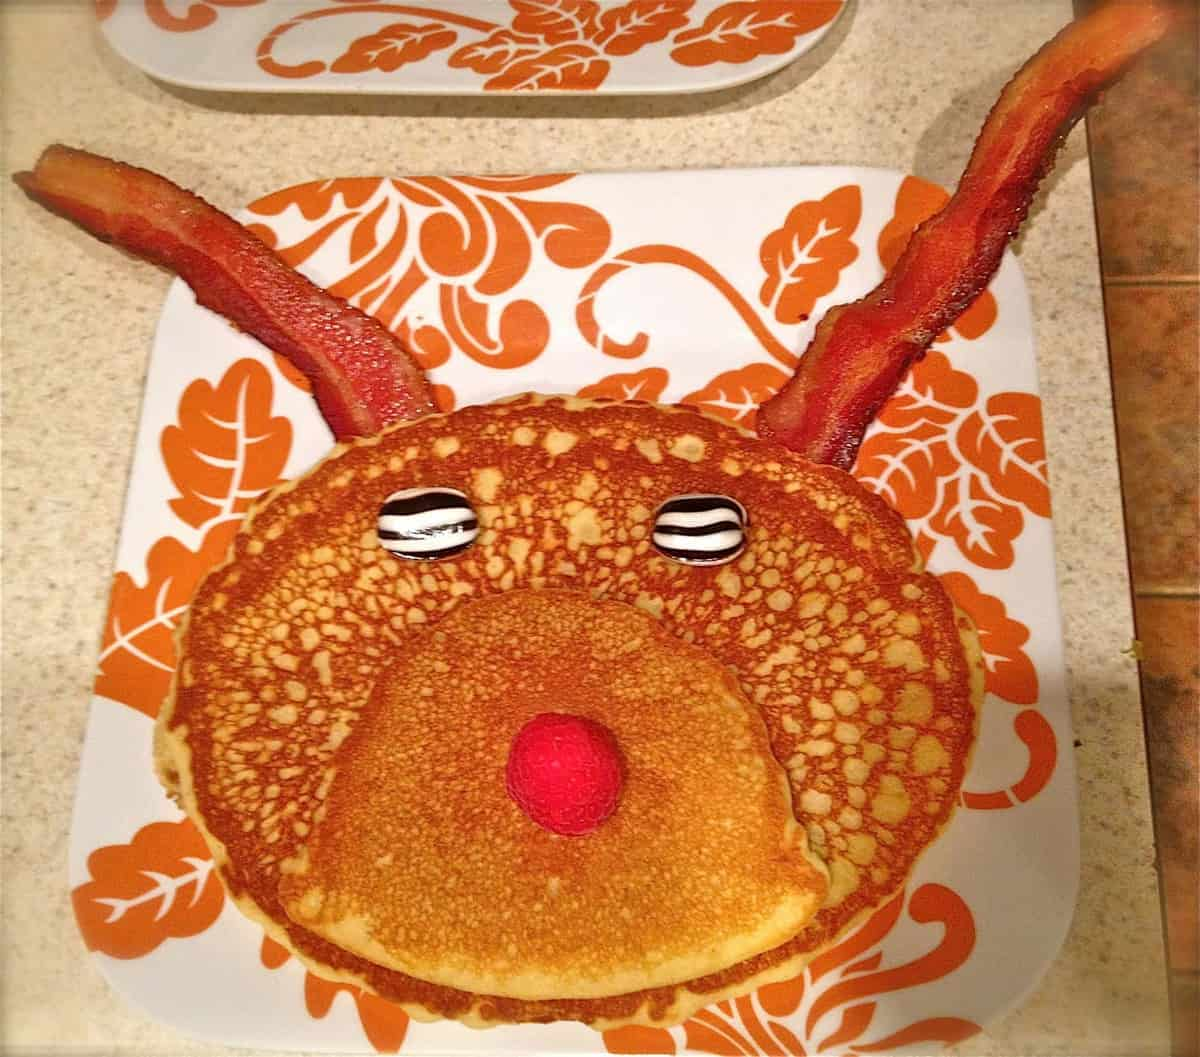 Rudolph the Reindeer Pancakes with Maple Bacon Antlers